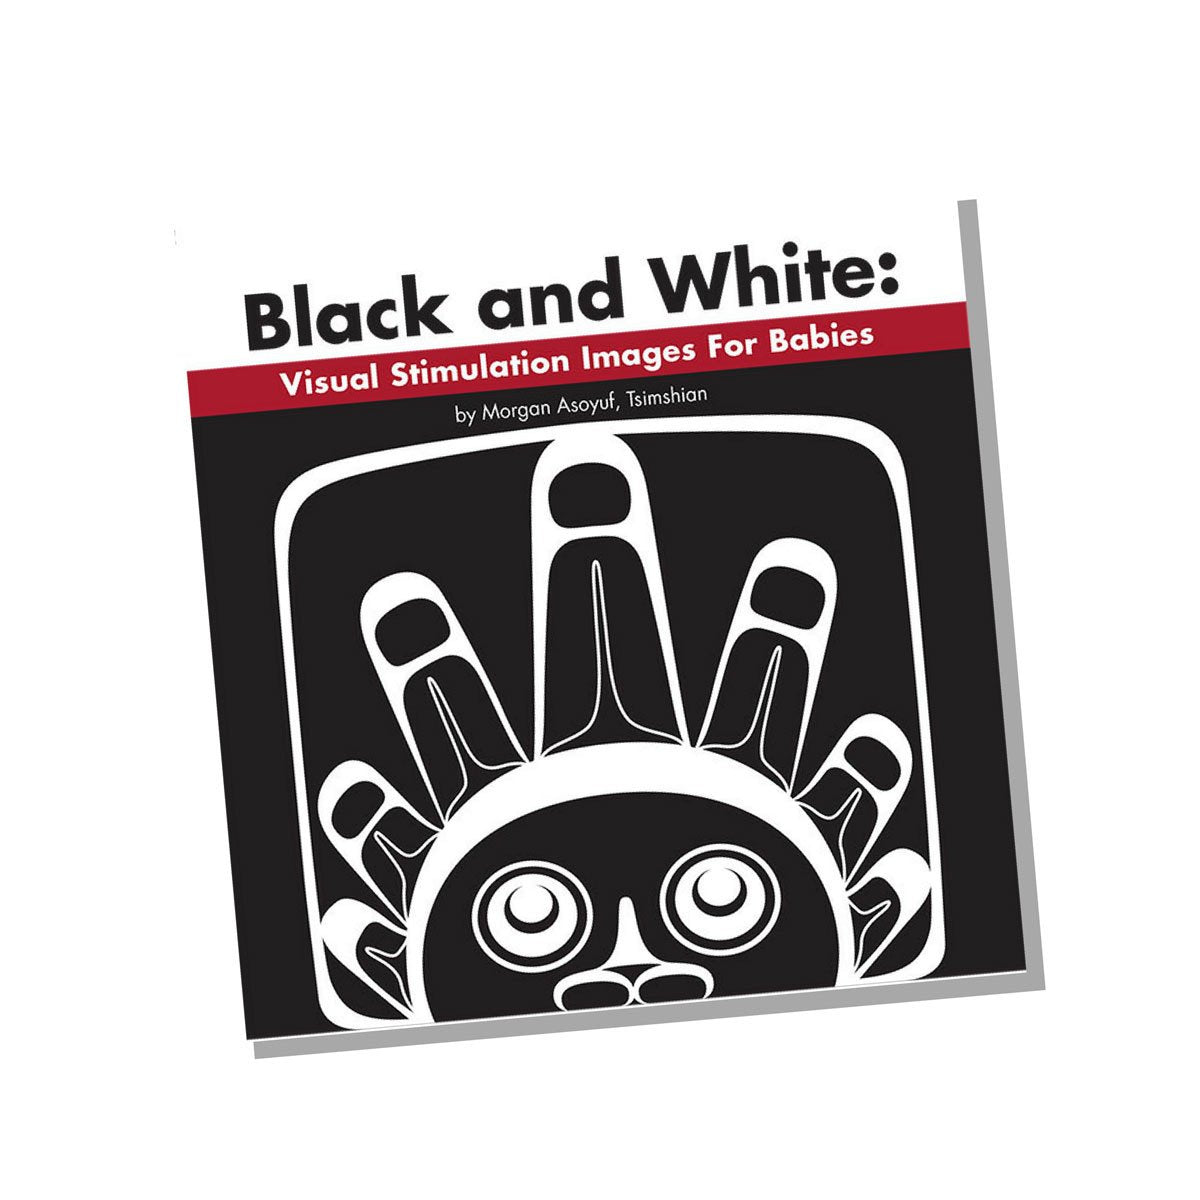 Black and White: Visual Stimulation Images for Babies by Morgan Asoyuf, Ts'msyen